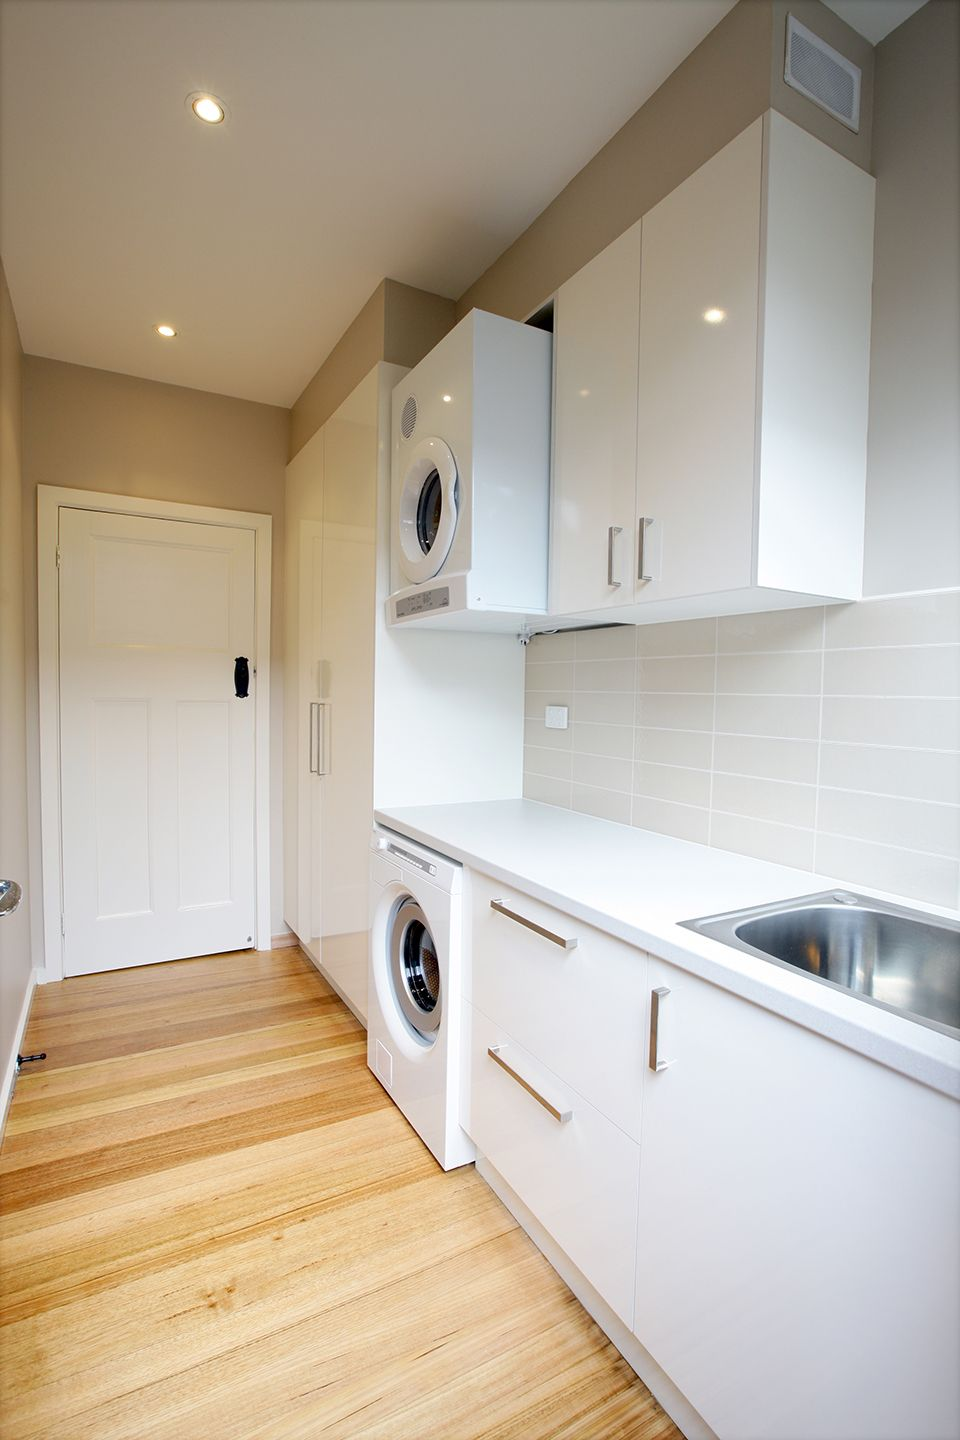 Kitchen Laundry Room Design: Laundry Renovations In Melbourne